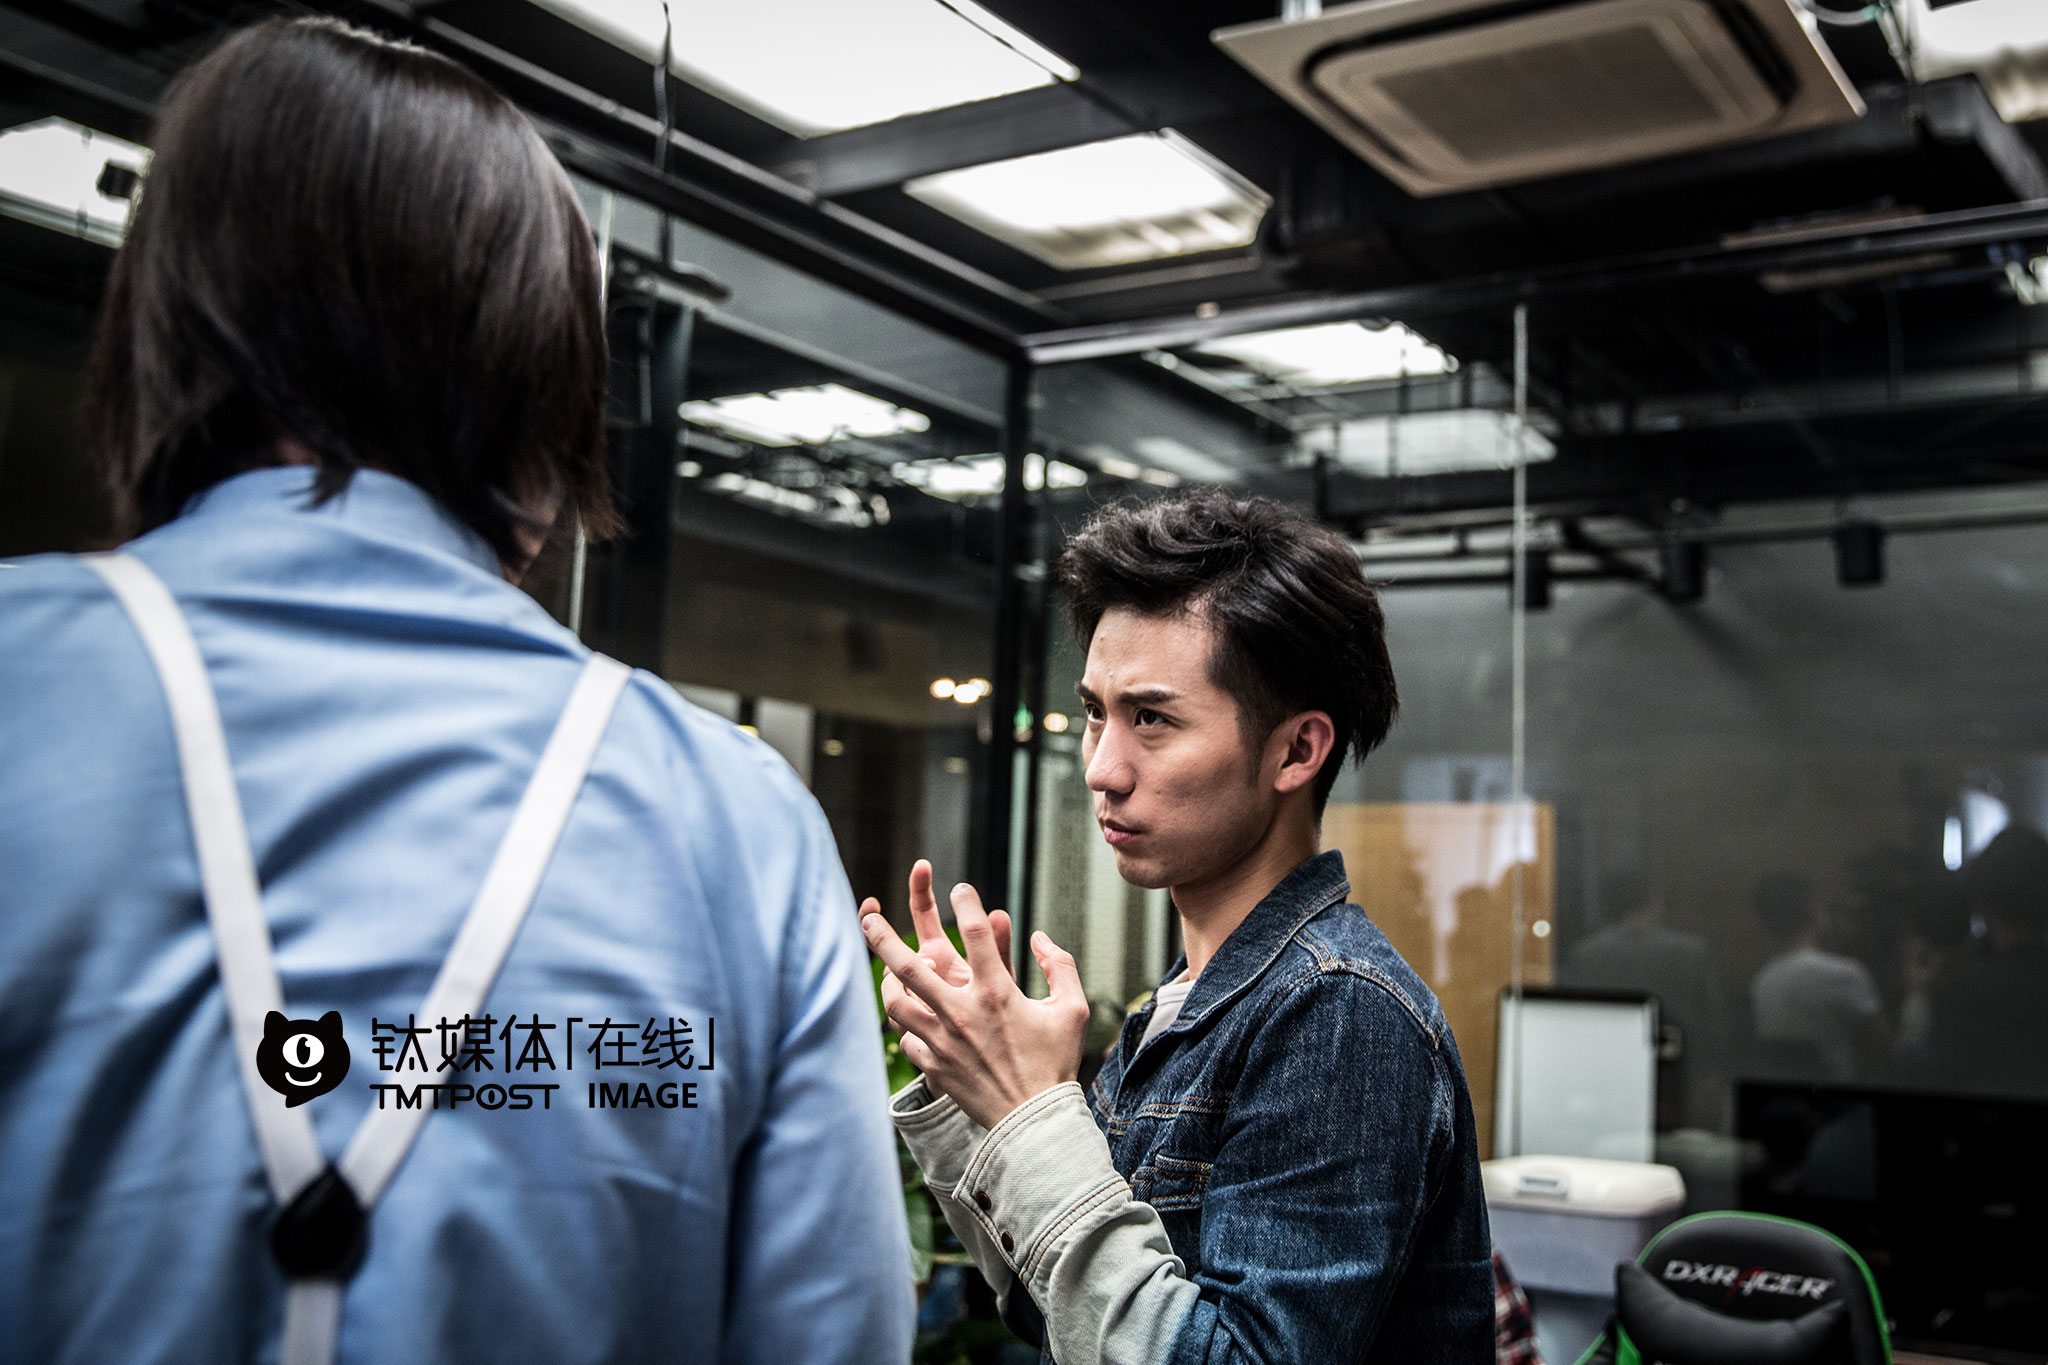 At the filming site, Liu Xunzimo was discussing with the boss, played by Zhang Benyu, about the performance of the characters.